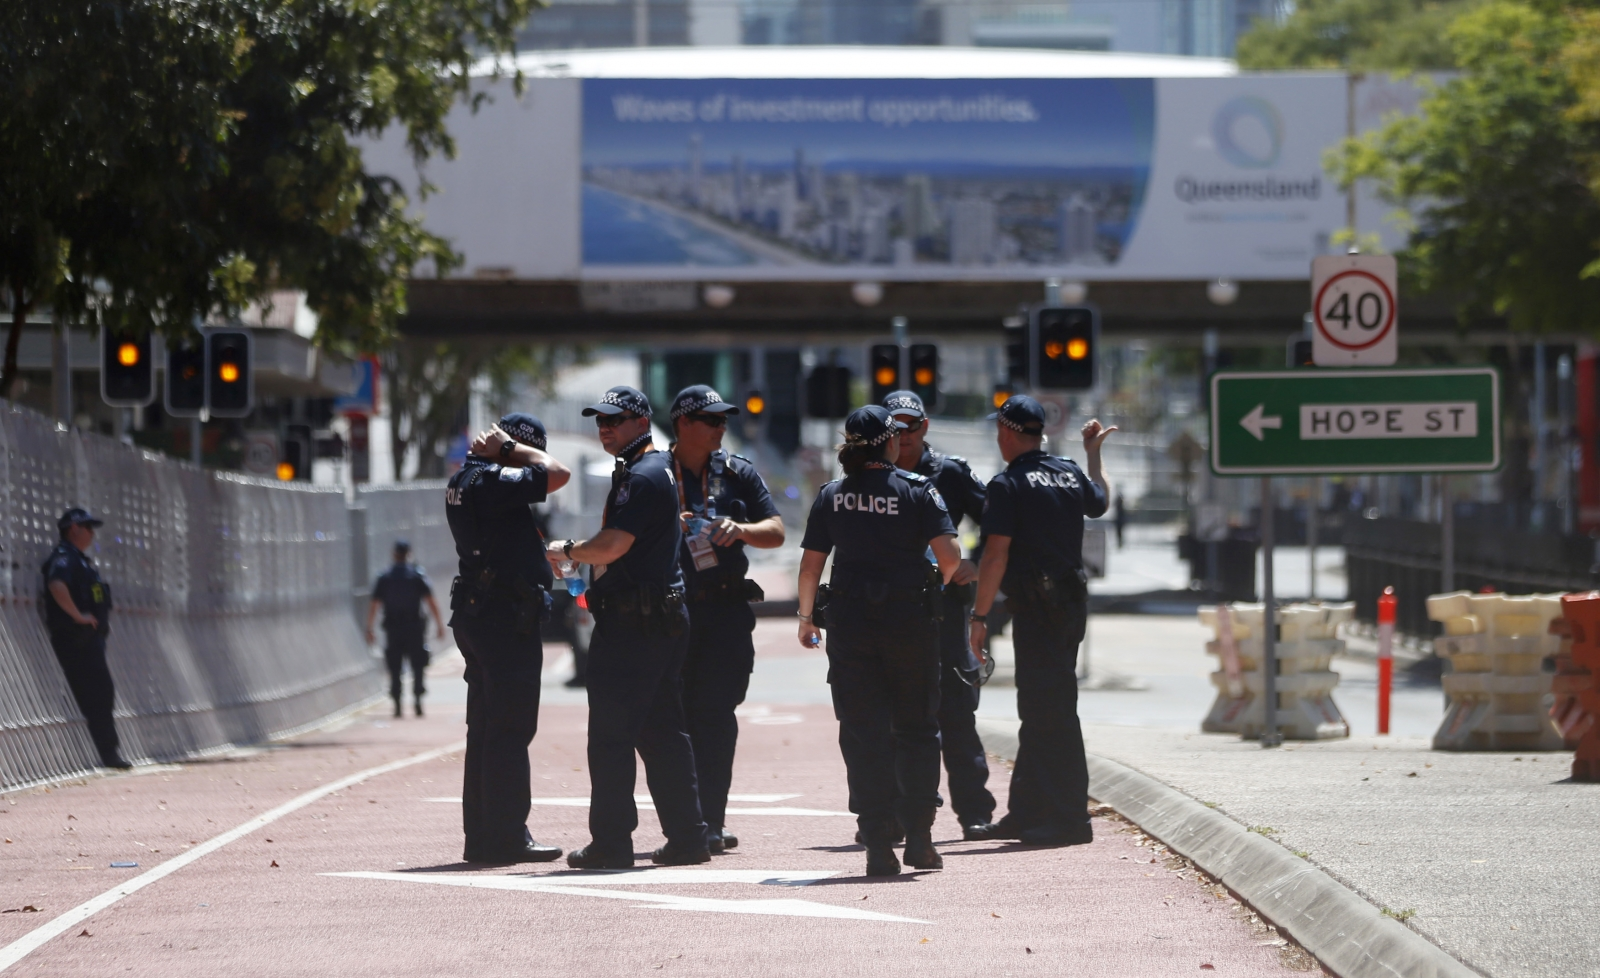 G20 summit security